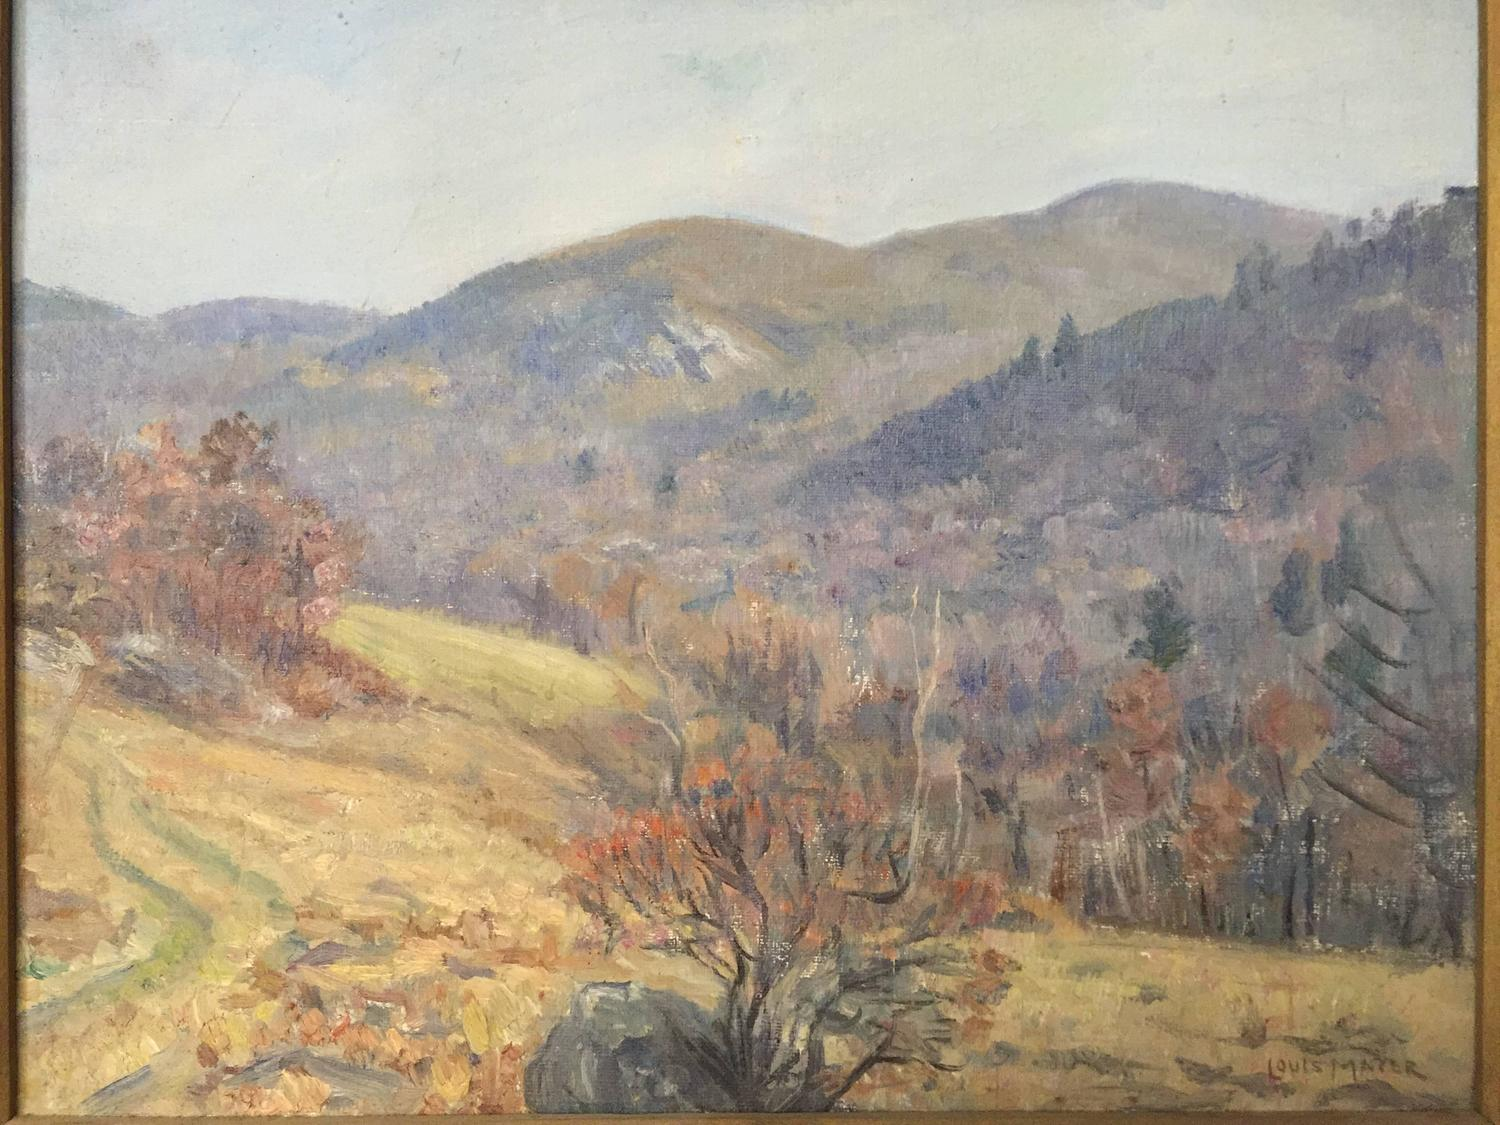 Louis Mayer Painting of Fishkill Mountain Hudson Valley, New York For Sale at 1stdibs